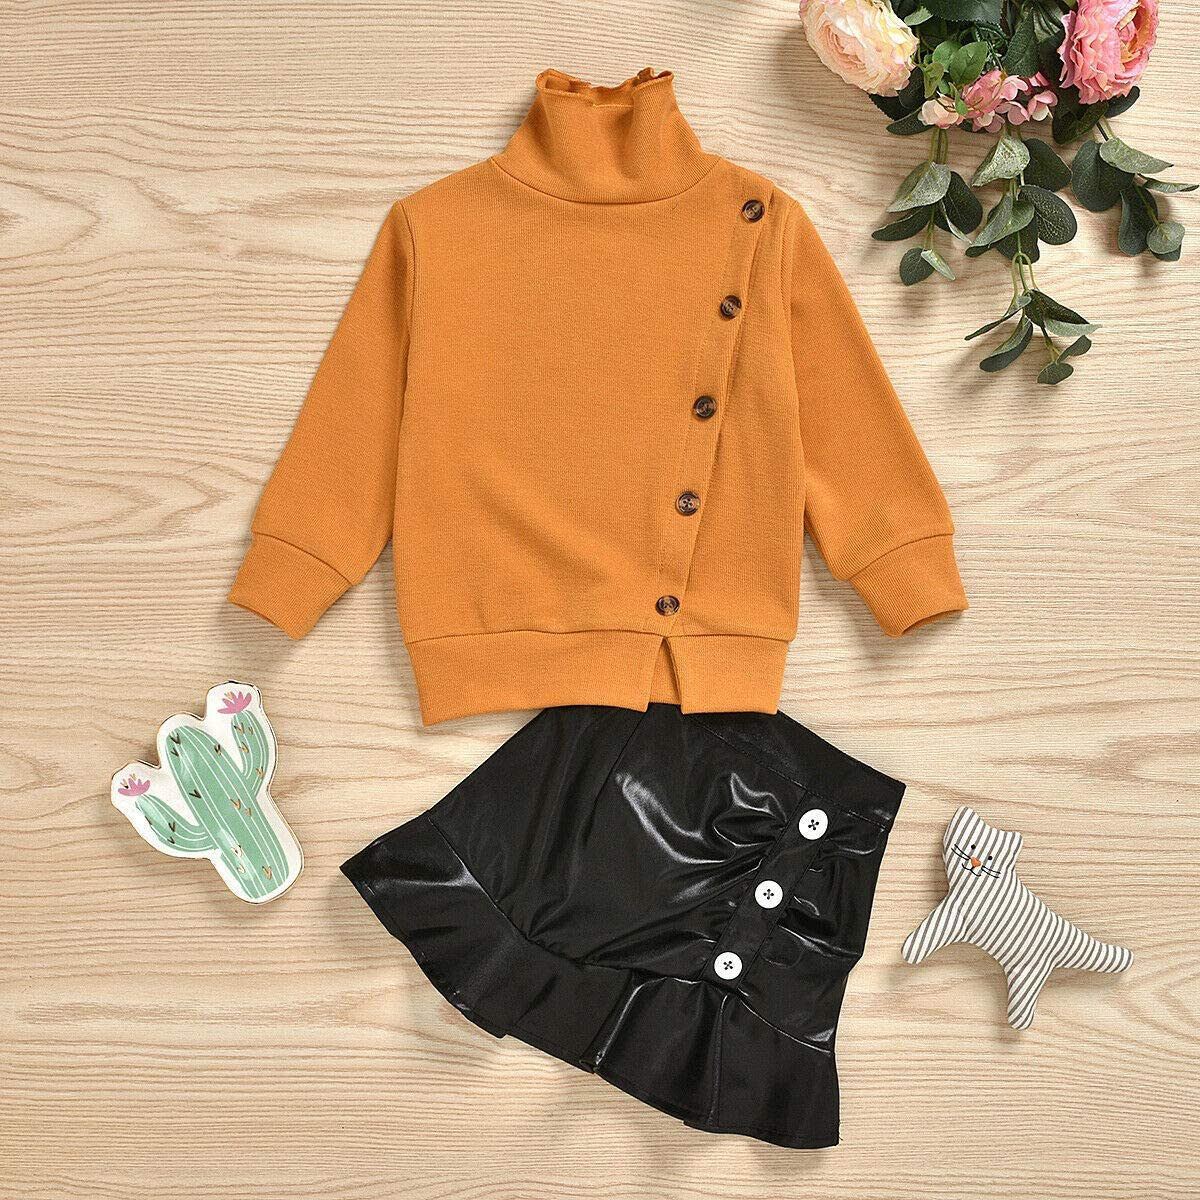 2PCS Toddler Kids Baby Girl Long Sleeve Sweater Tops Mini PU Leather Skirt Set Dresses Outfits Fall Clothes